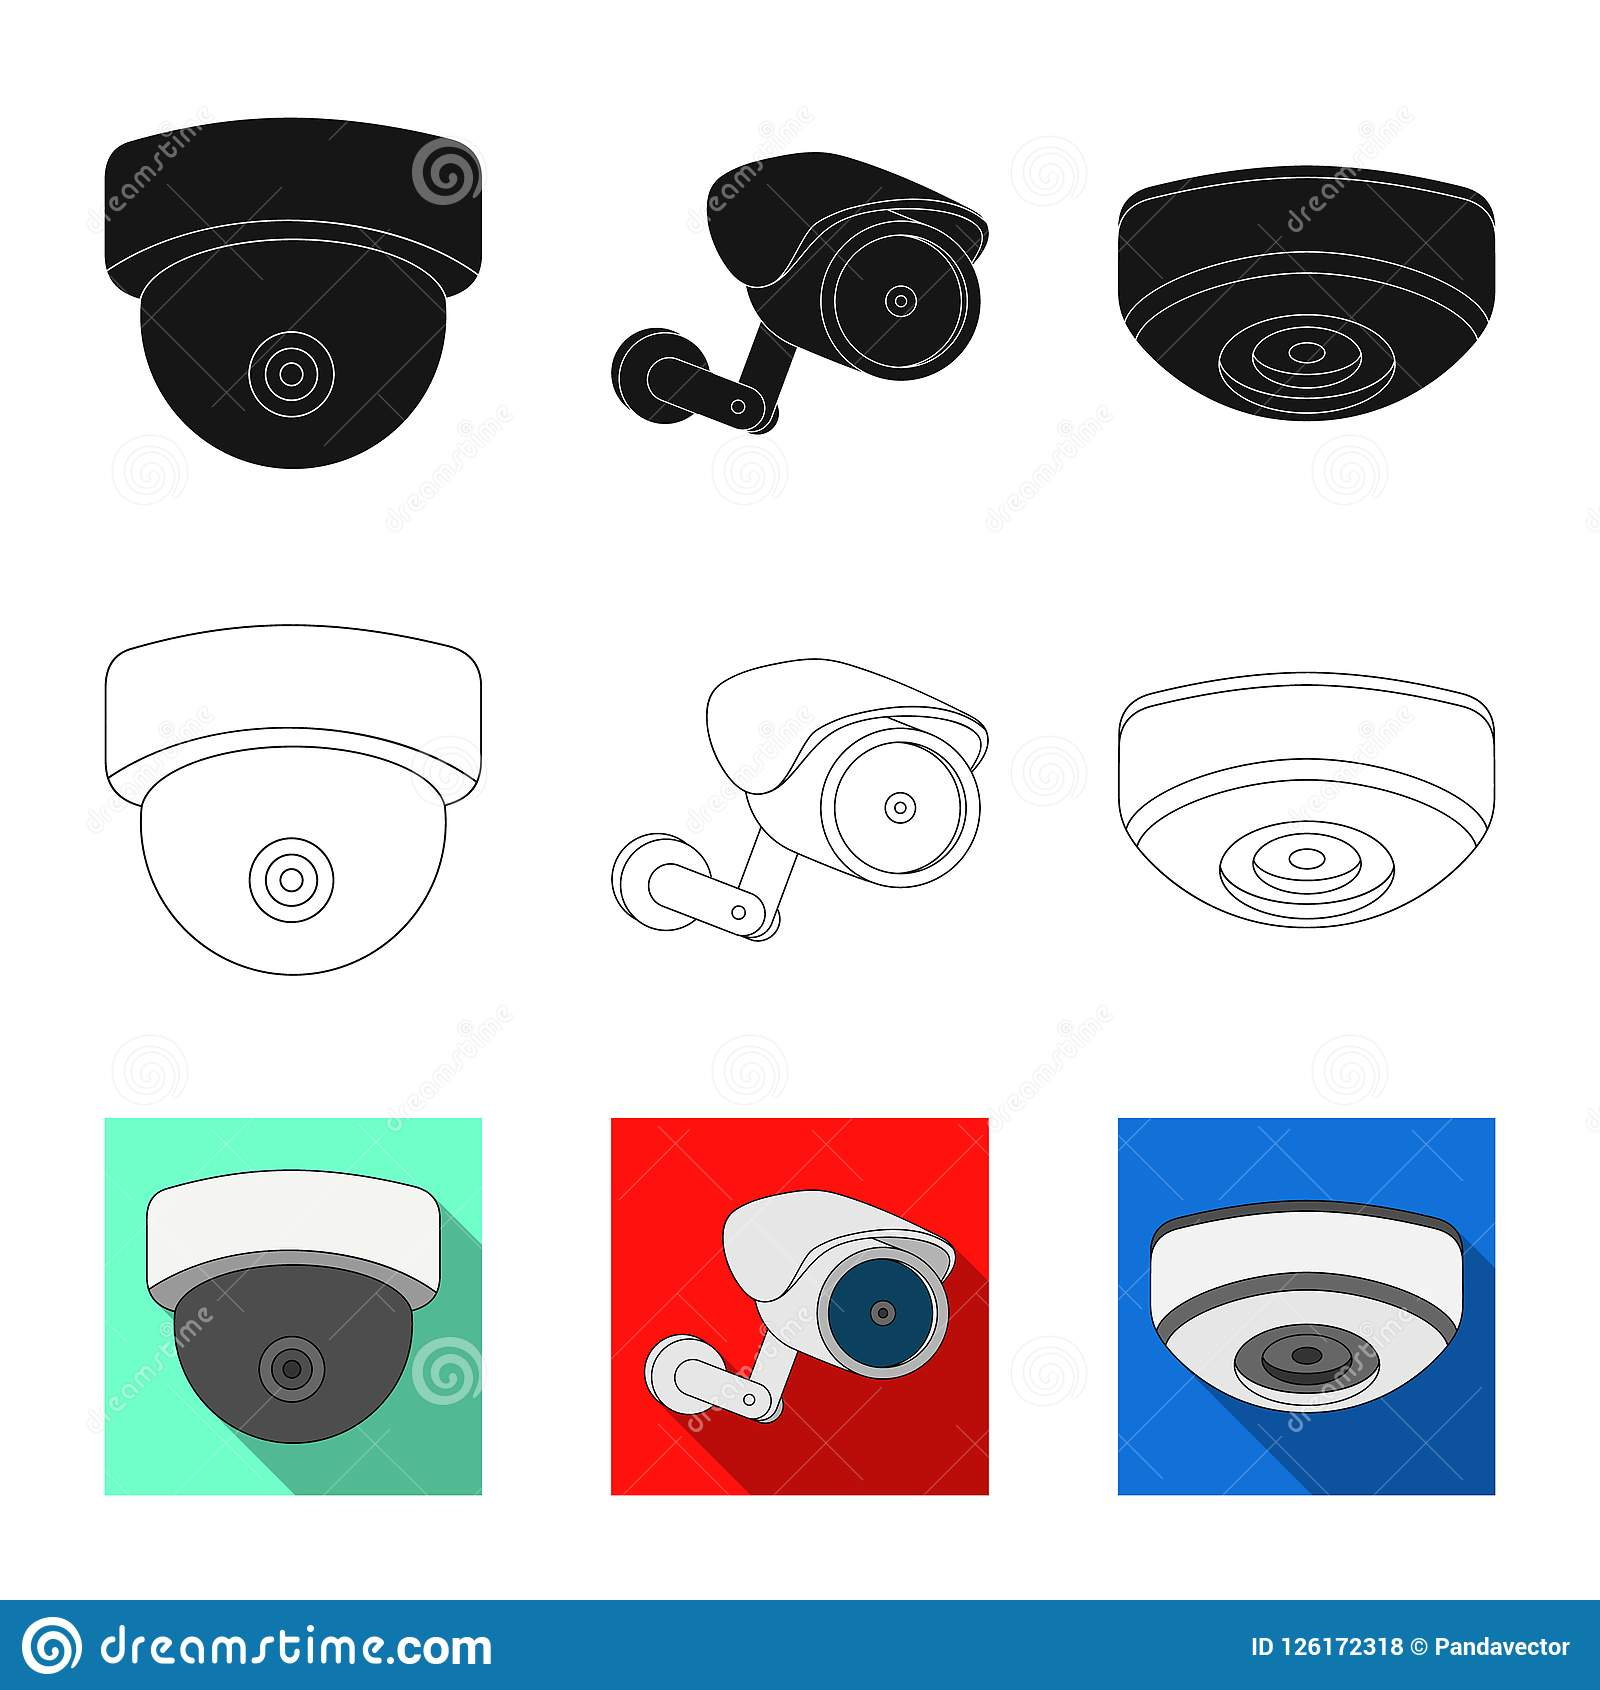 Vector Design Of Cctv And Camera Symbol Collection Of Cctv And